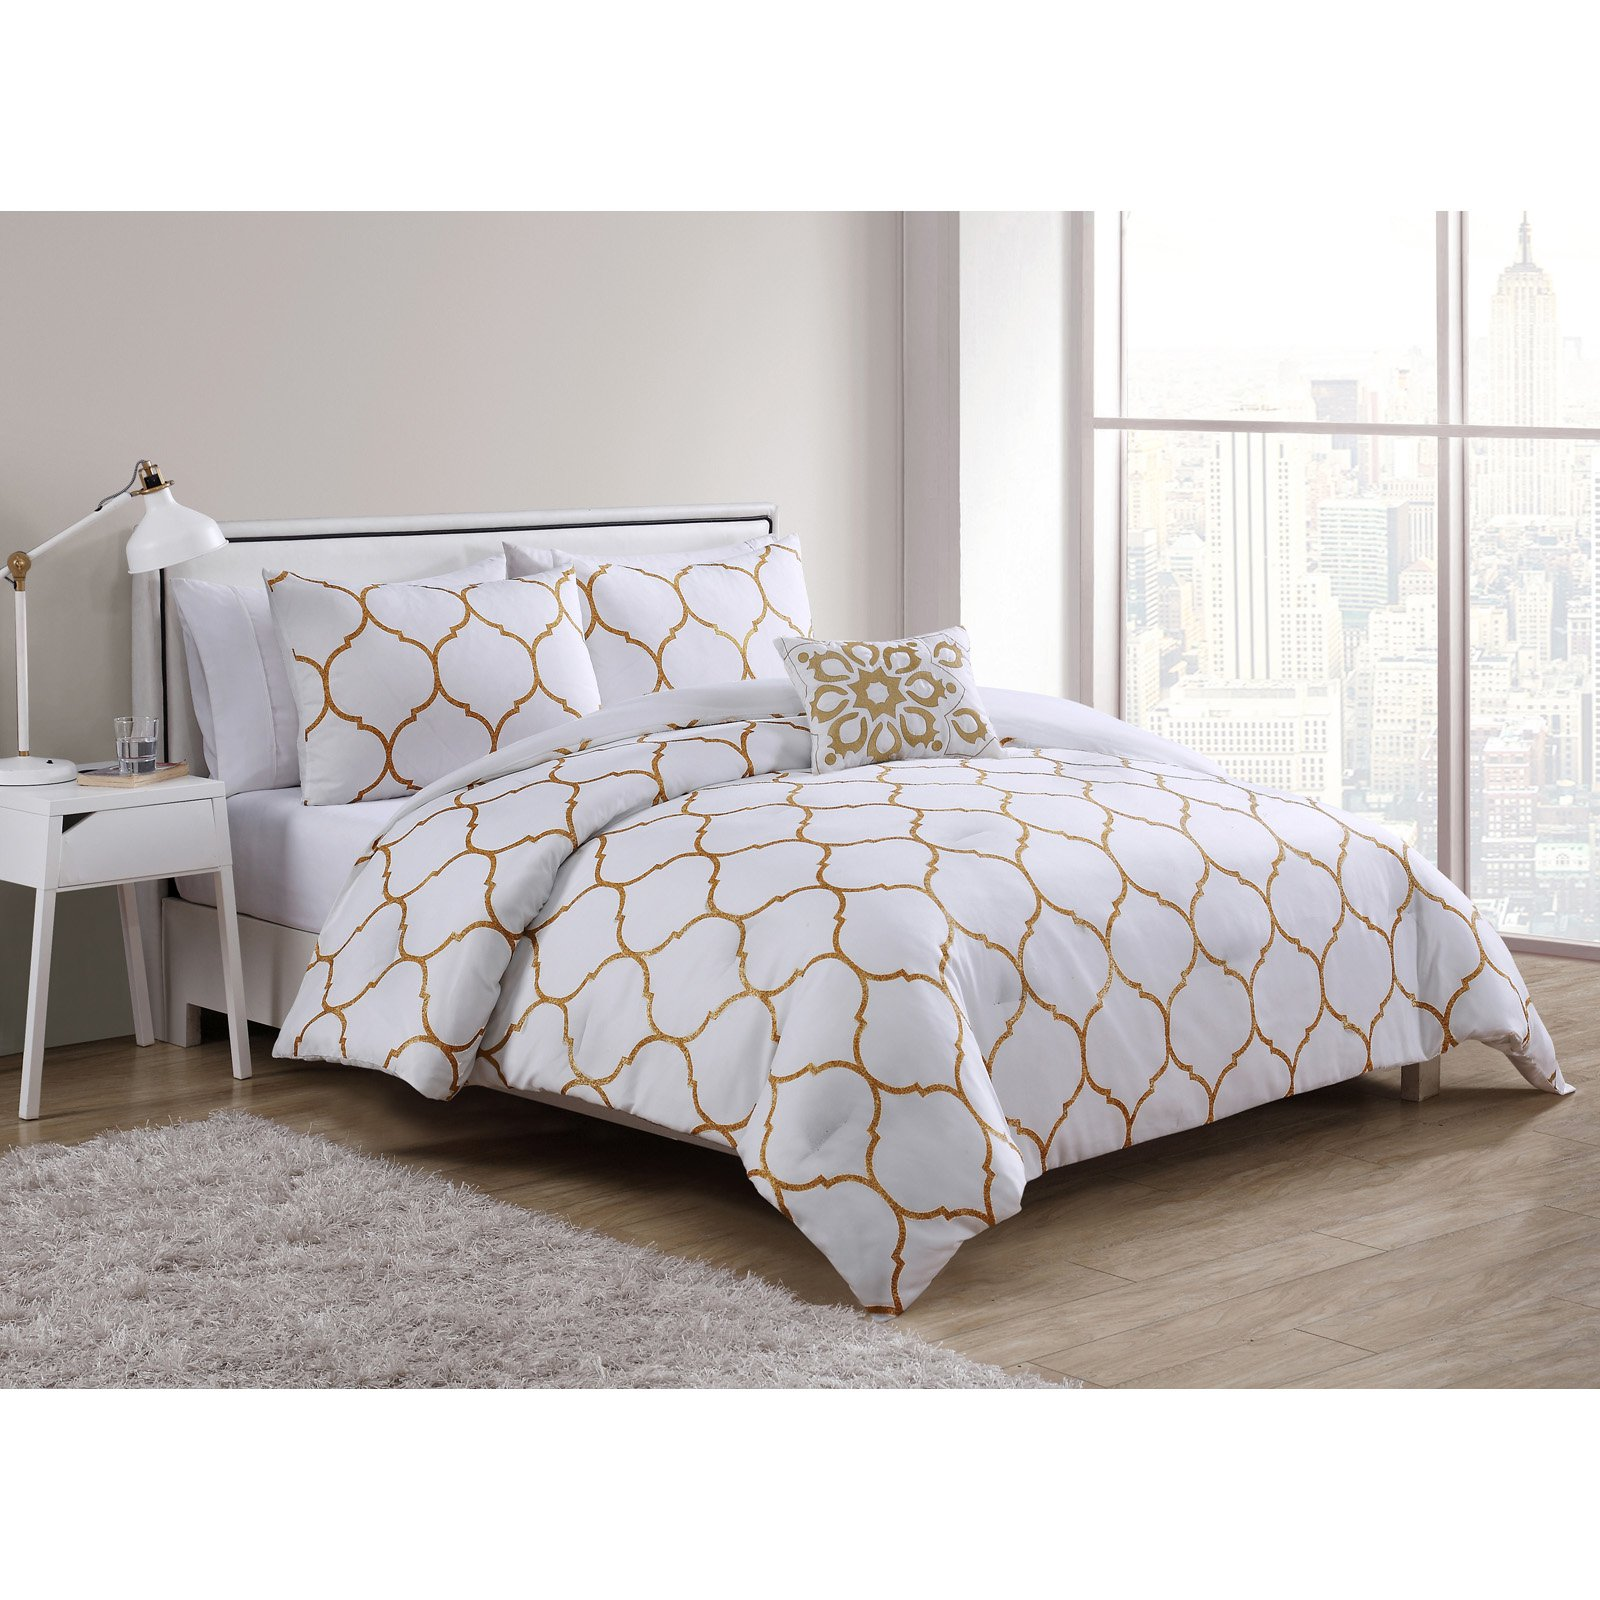 VCNY Home Ogee 3/4 Piece Duvet Cover Bedding Set, Shams Included